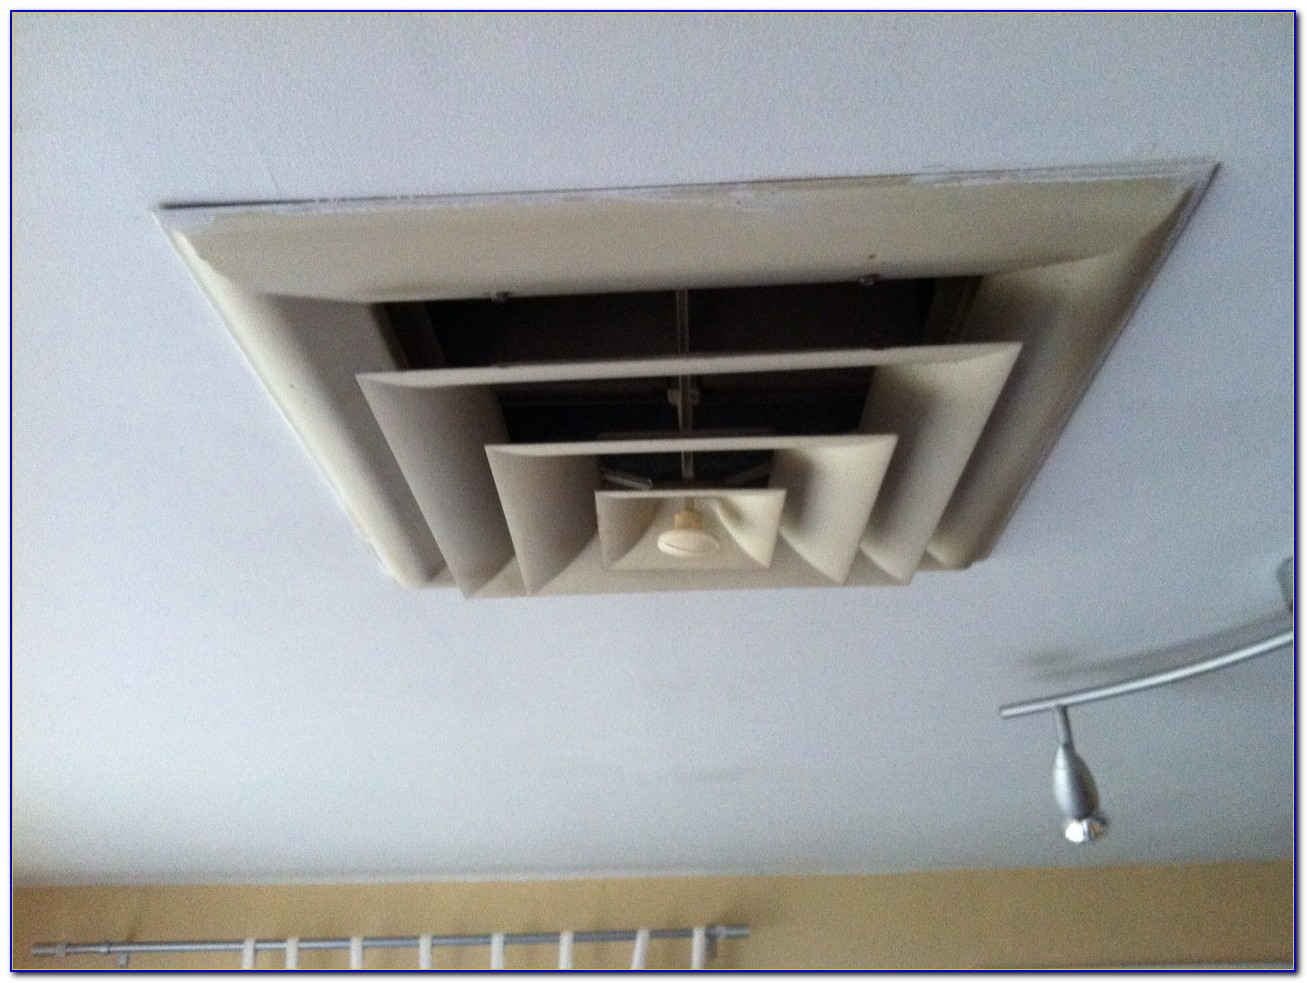 Air Vent Ceiling Slot Diffuser